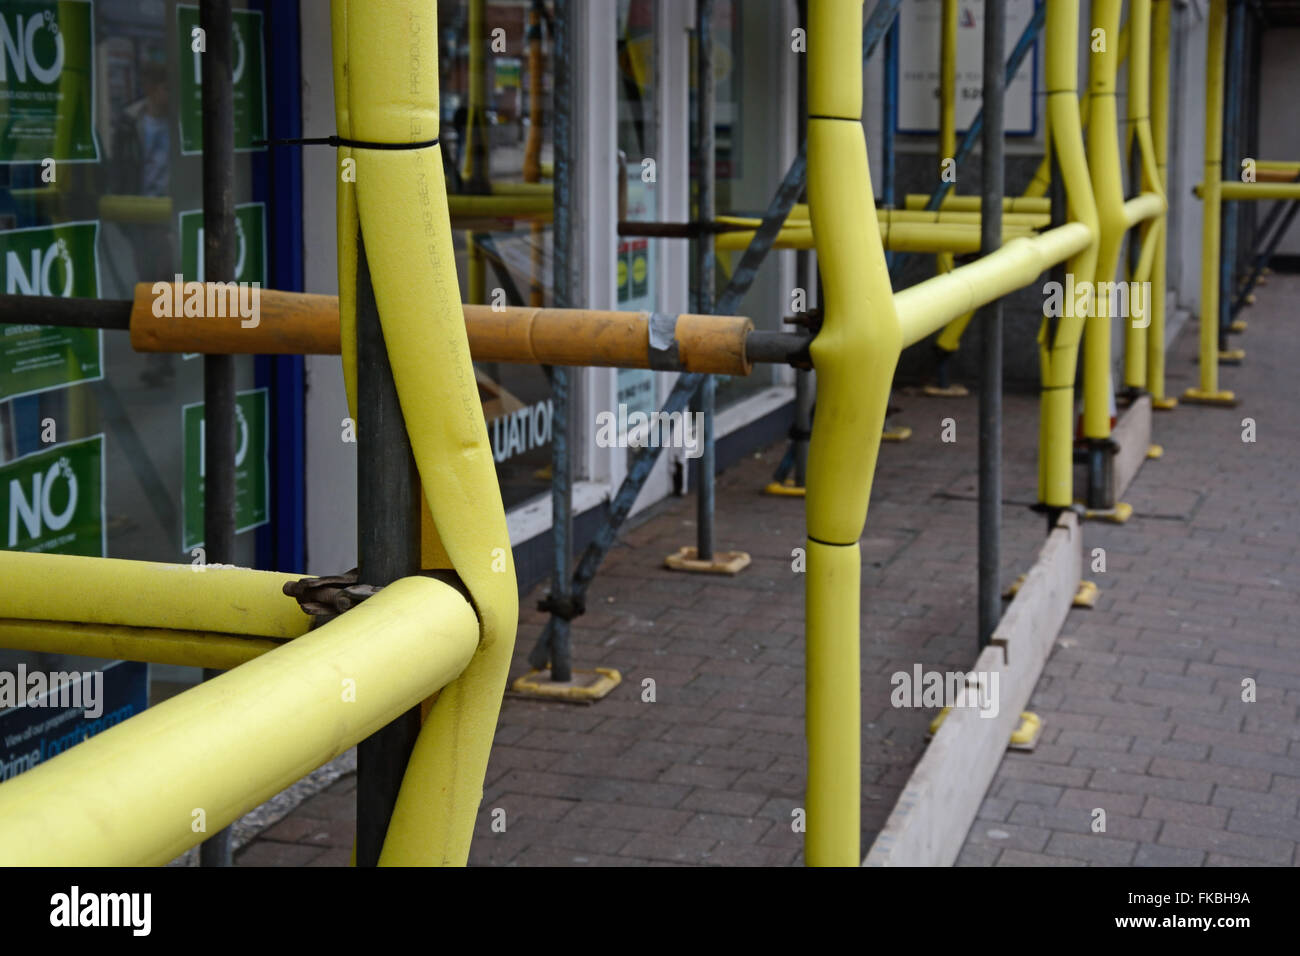 scaffolding with padding for safety. Beeston Nottingham. - Stock Image